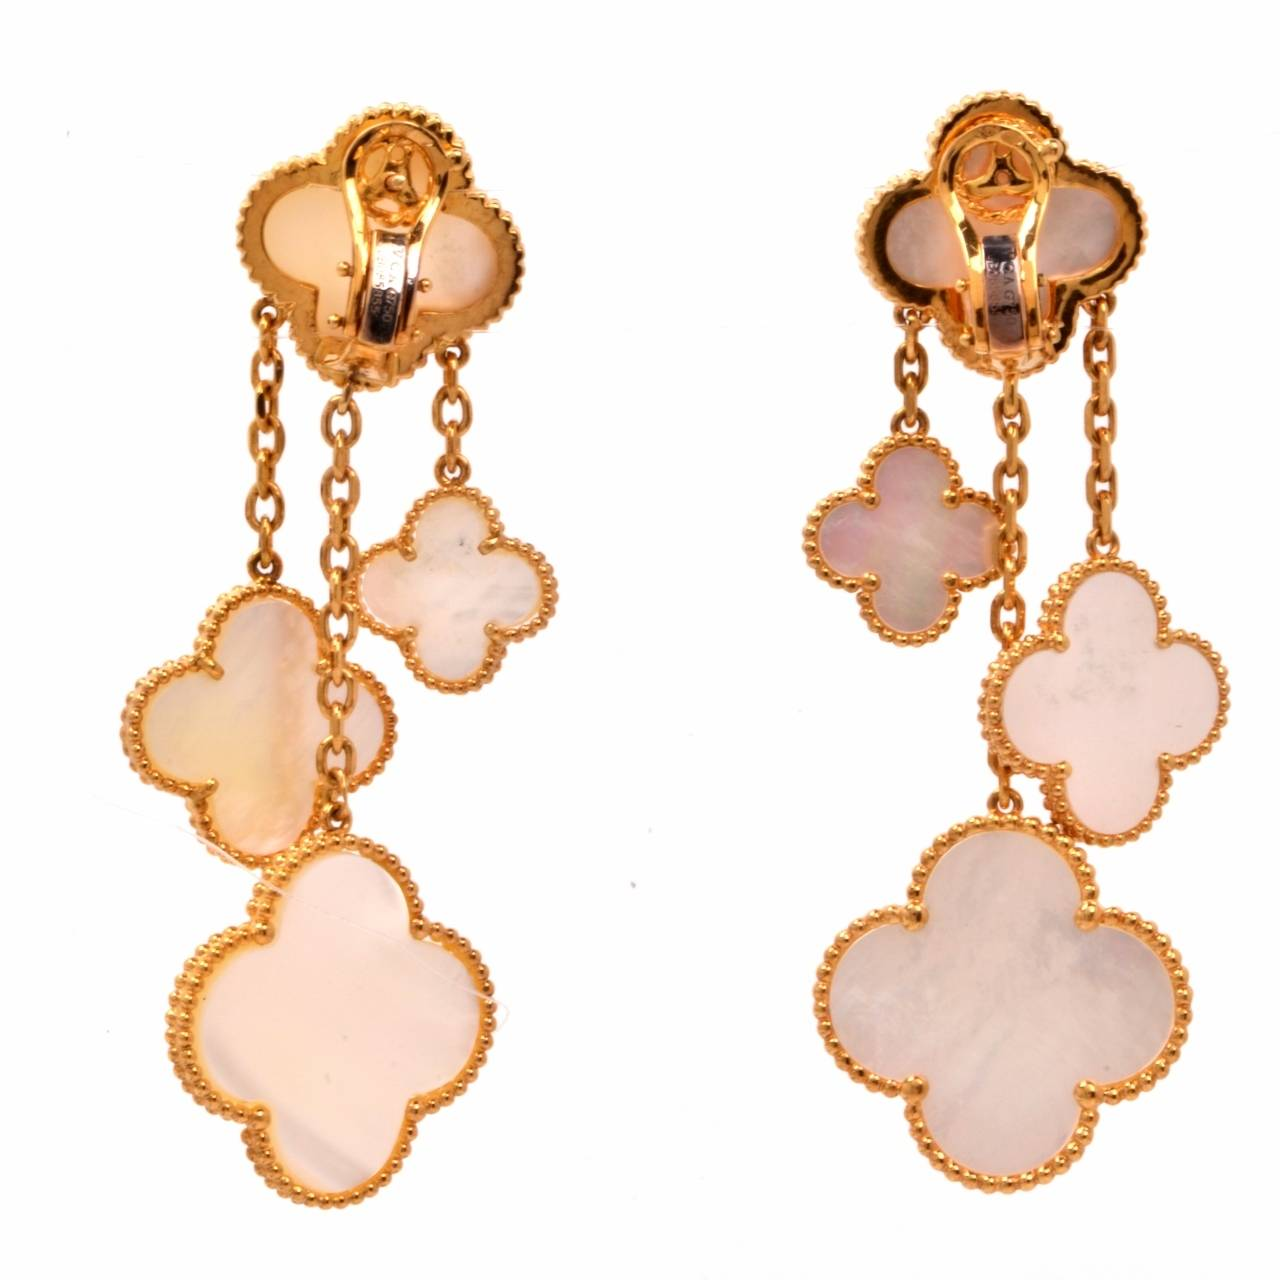 Van Cleef & Arpels VCA Alhambra Collection Mother-of-Pearl Gold Earrings 3